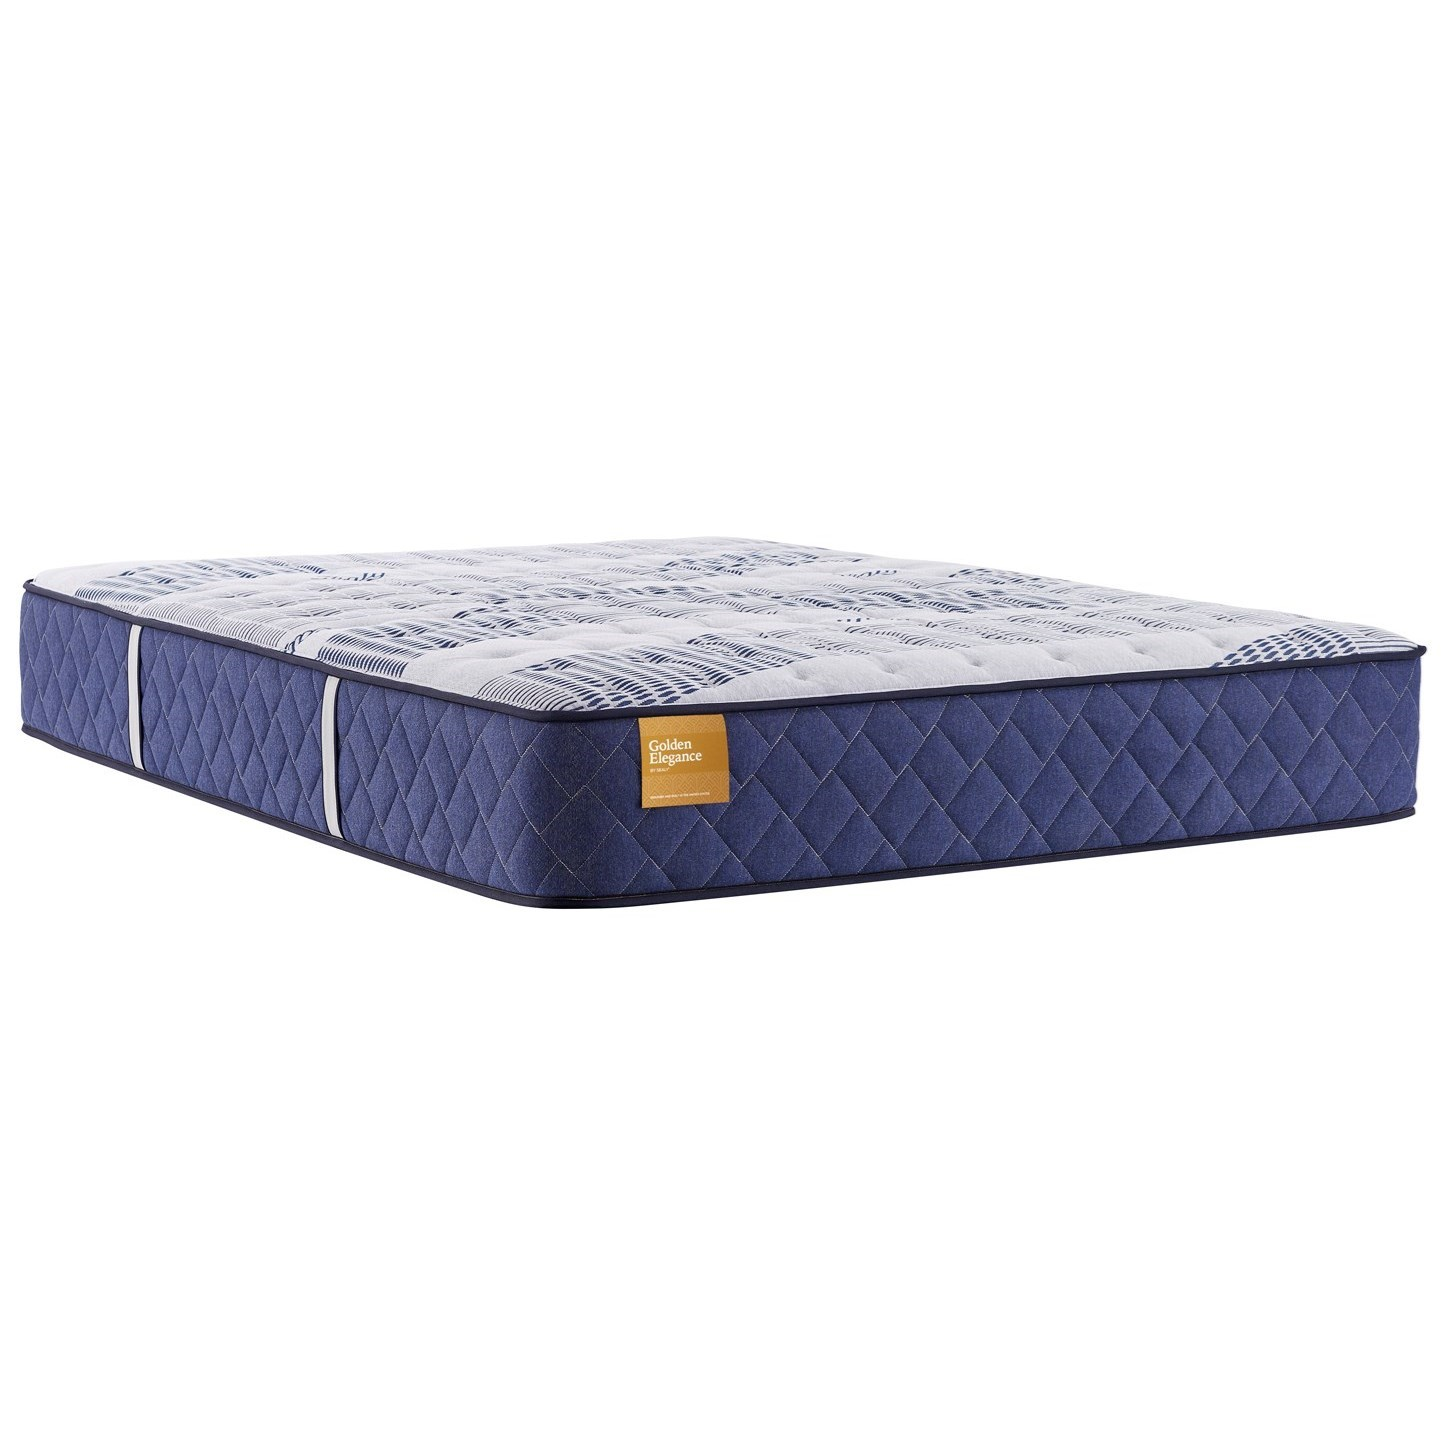 "Etherial Gold Plush TT B4 Twin XL 12 1/2"" Plush Mattress by Sealy at Beck's Furniture"